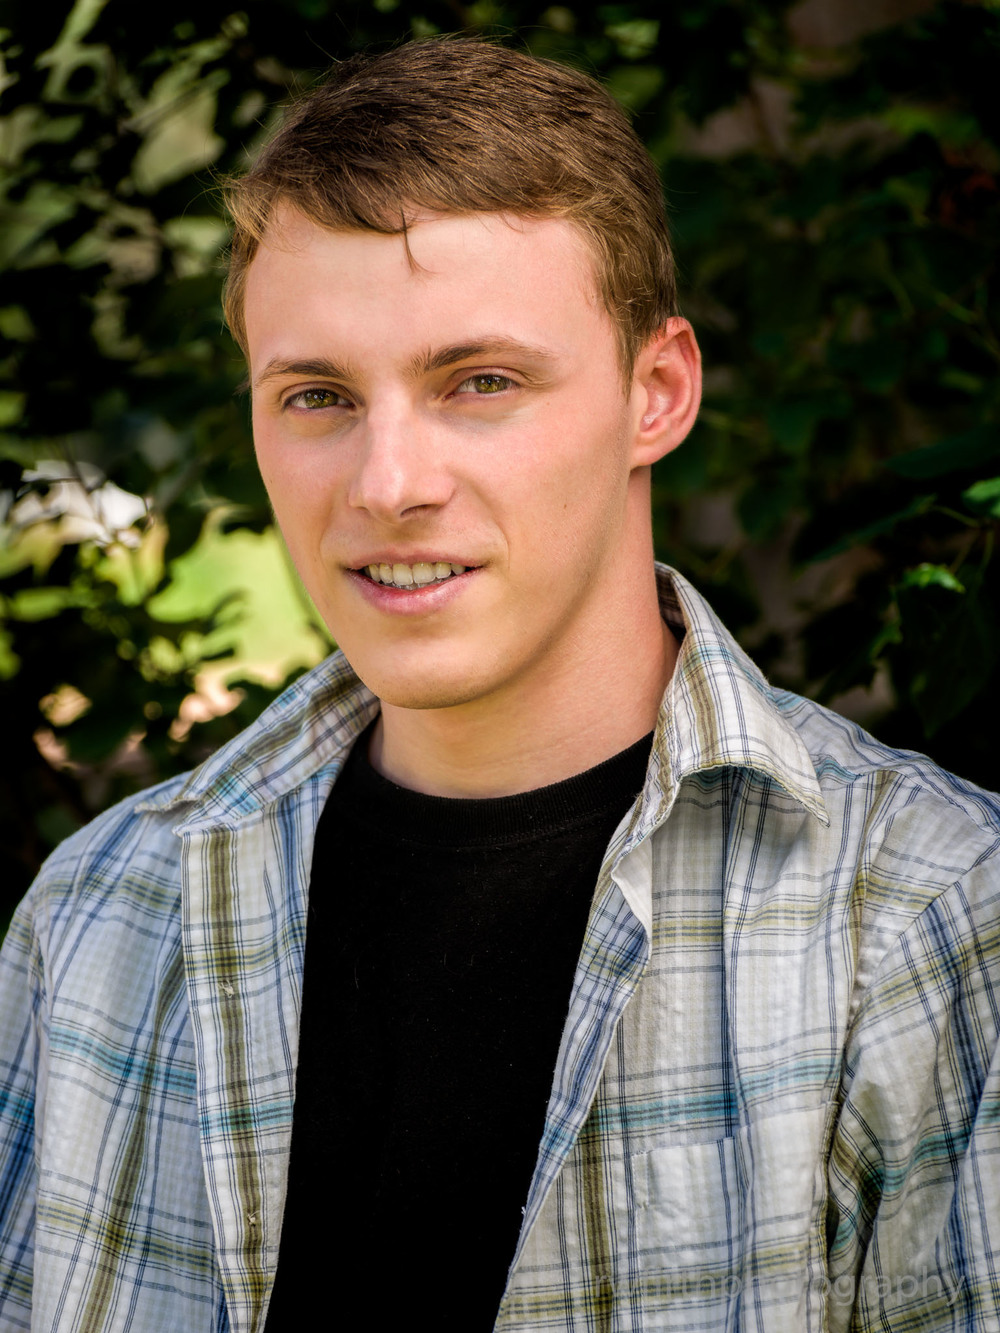 High school senior Tyler during a senior photography session in 2014.  The venue for this session was the City of Colorado Springs demonstration gardens.  Photo by Richard Firth, R.W. Firth Photography.